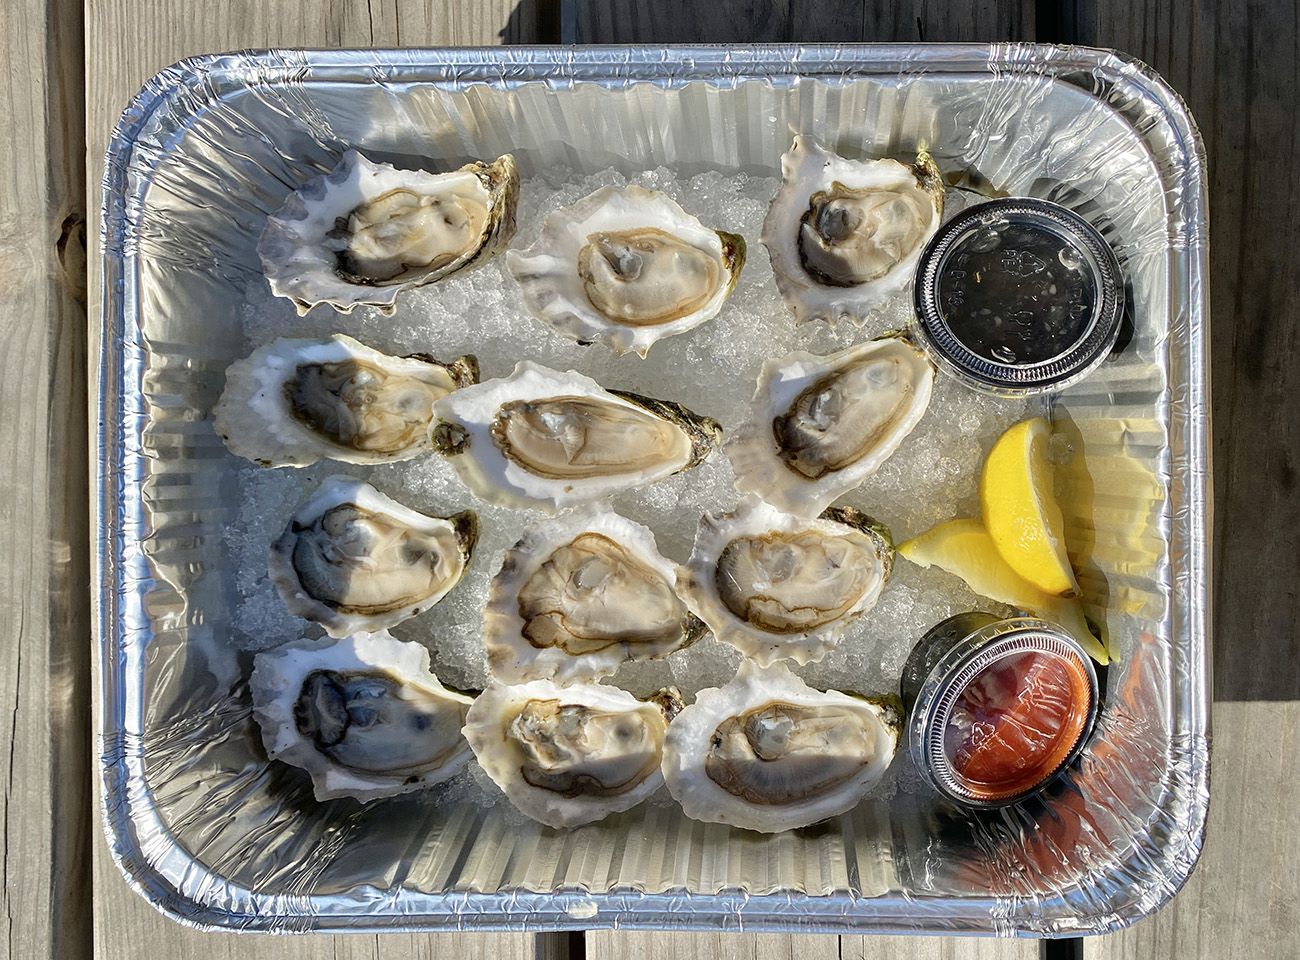 The 9 best places to eat oysters in Charlotte